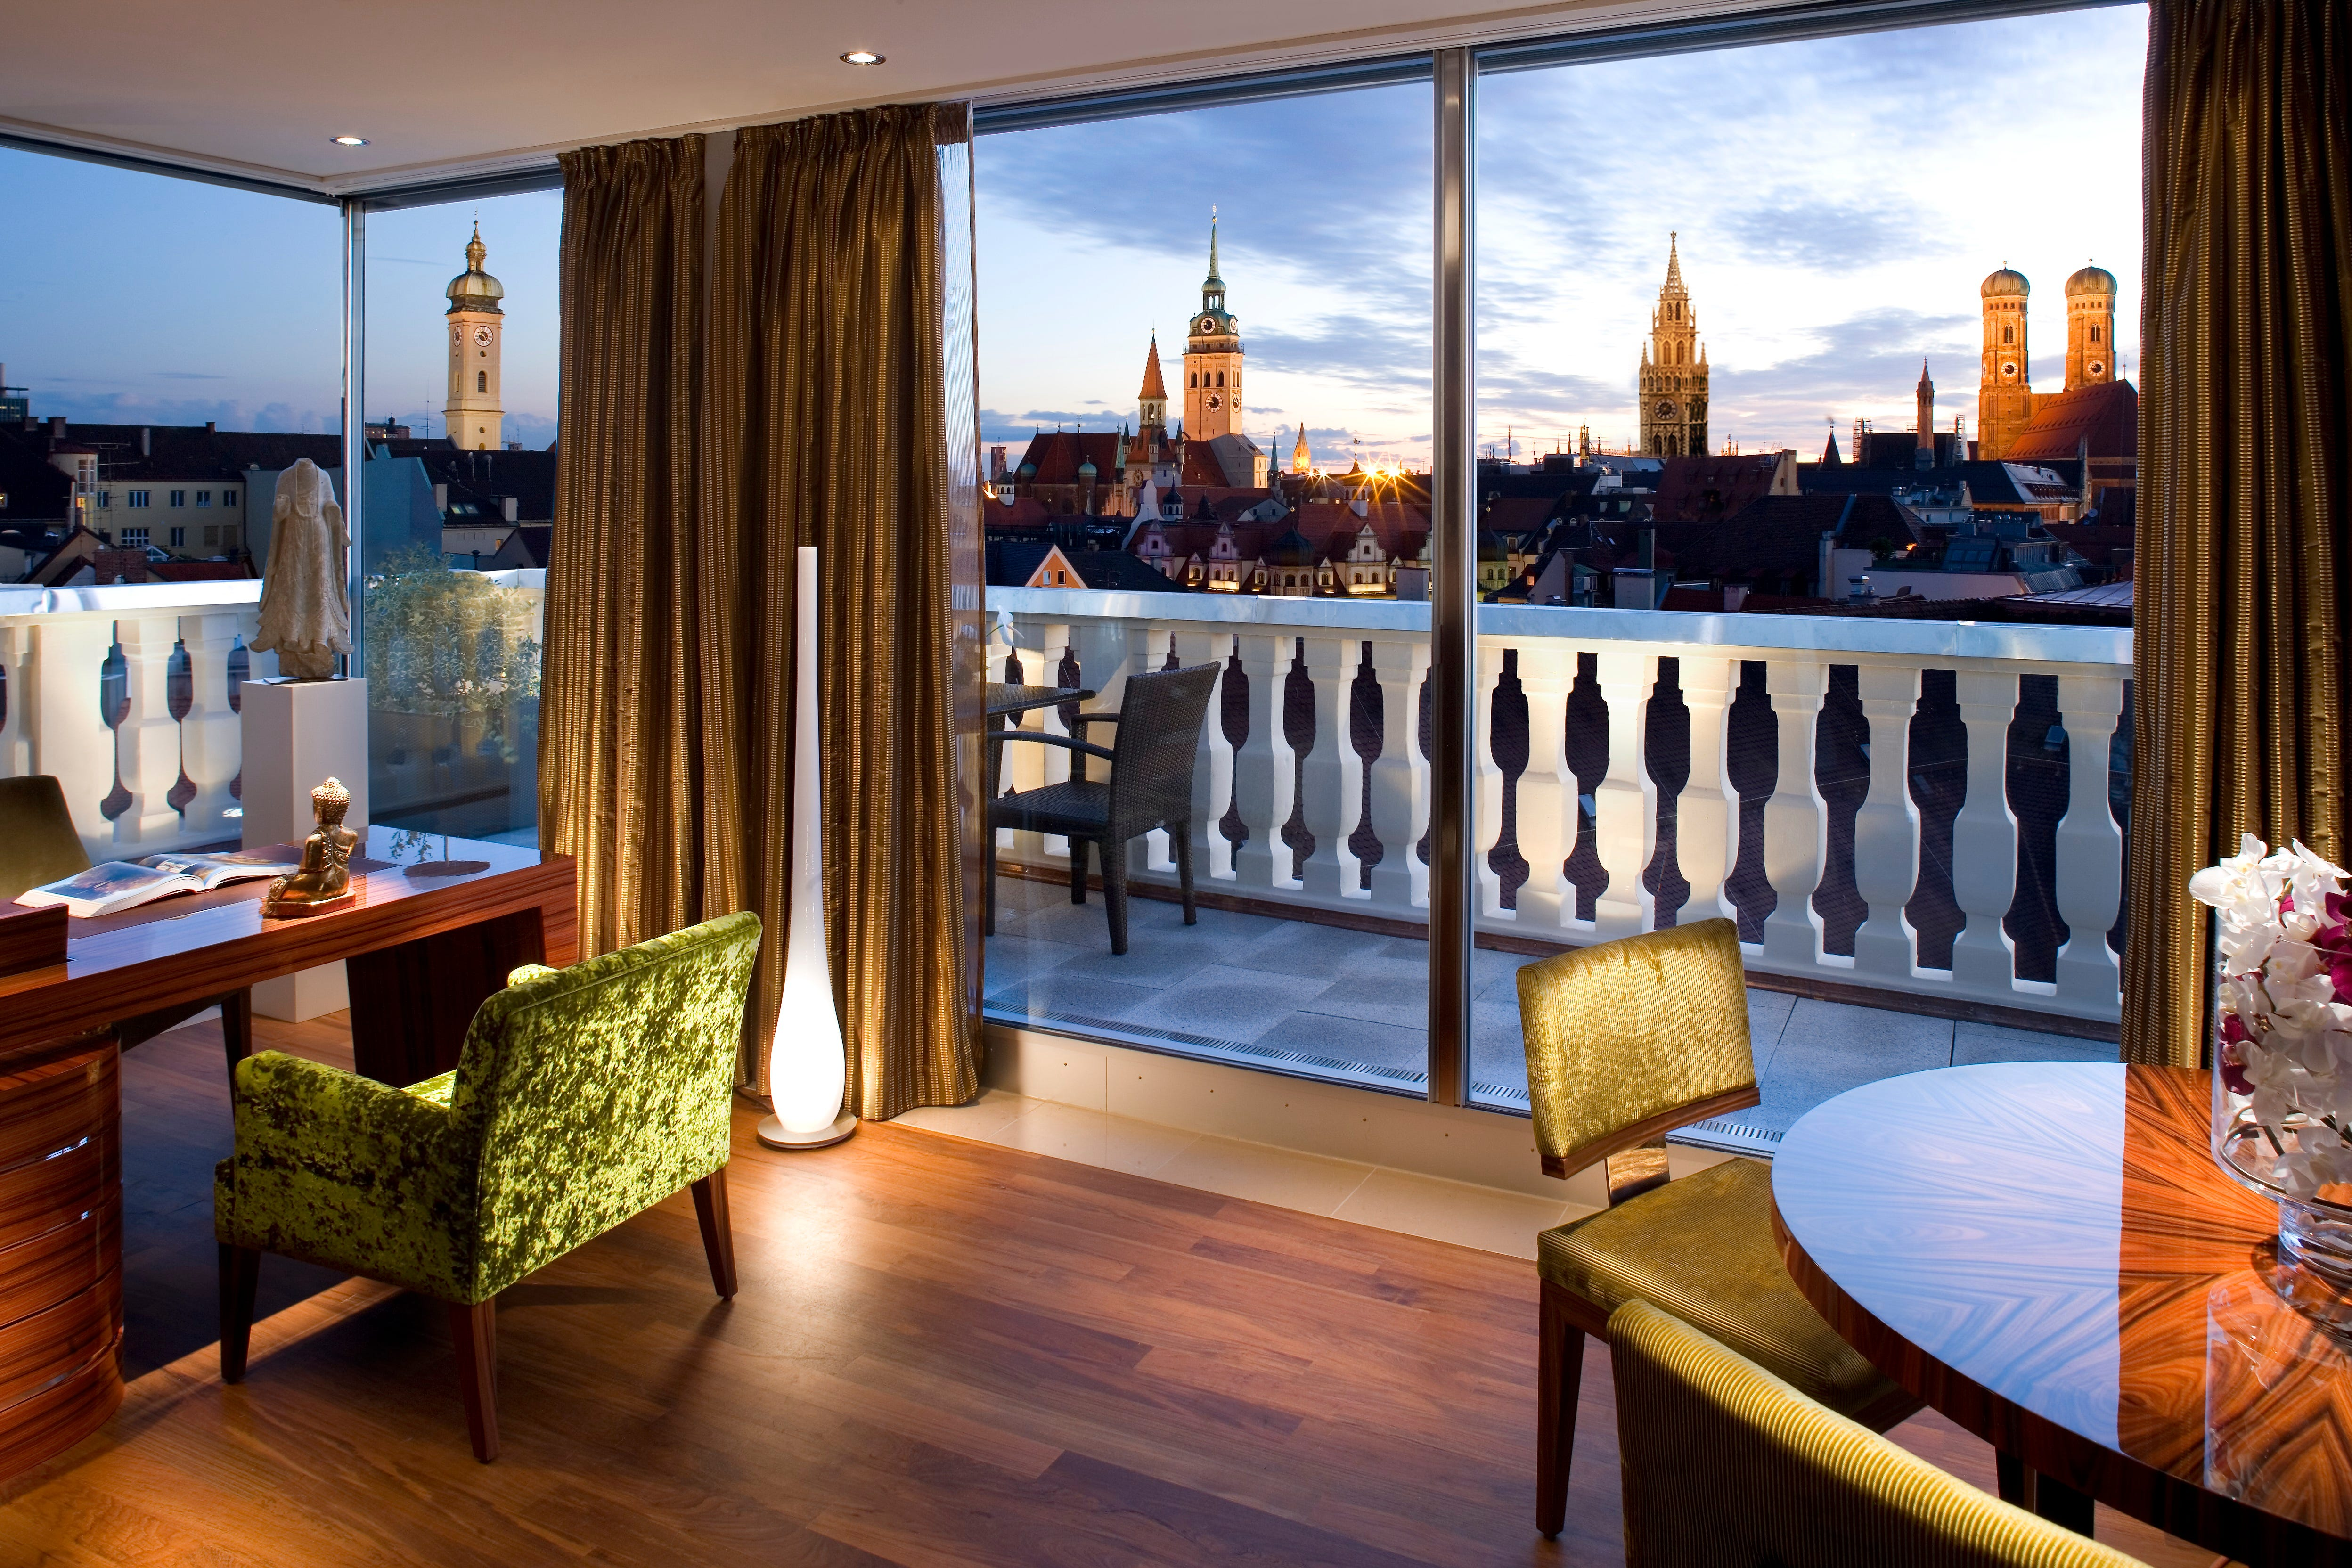 Booking.com's top reviewed hotels in Munich for Oktoberfest   USA Today